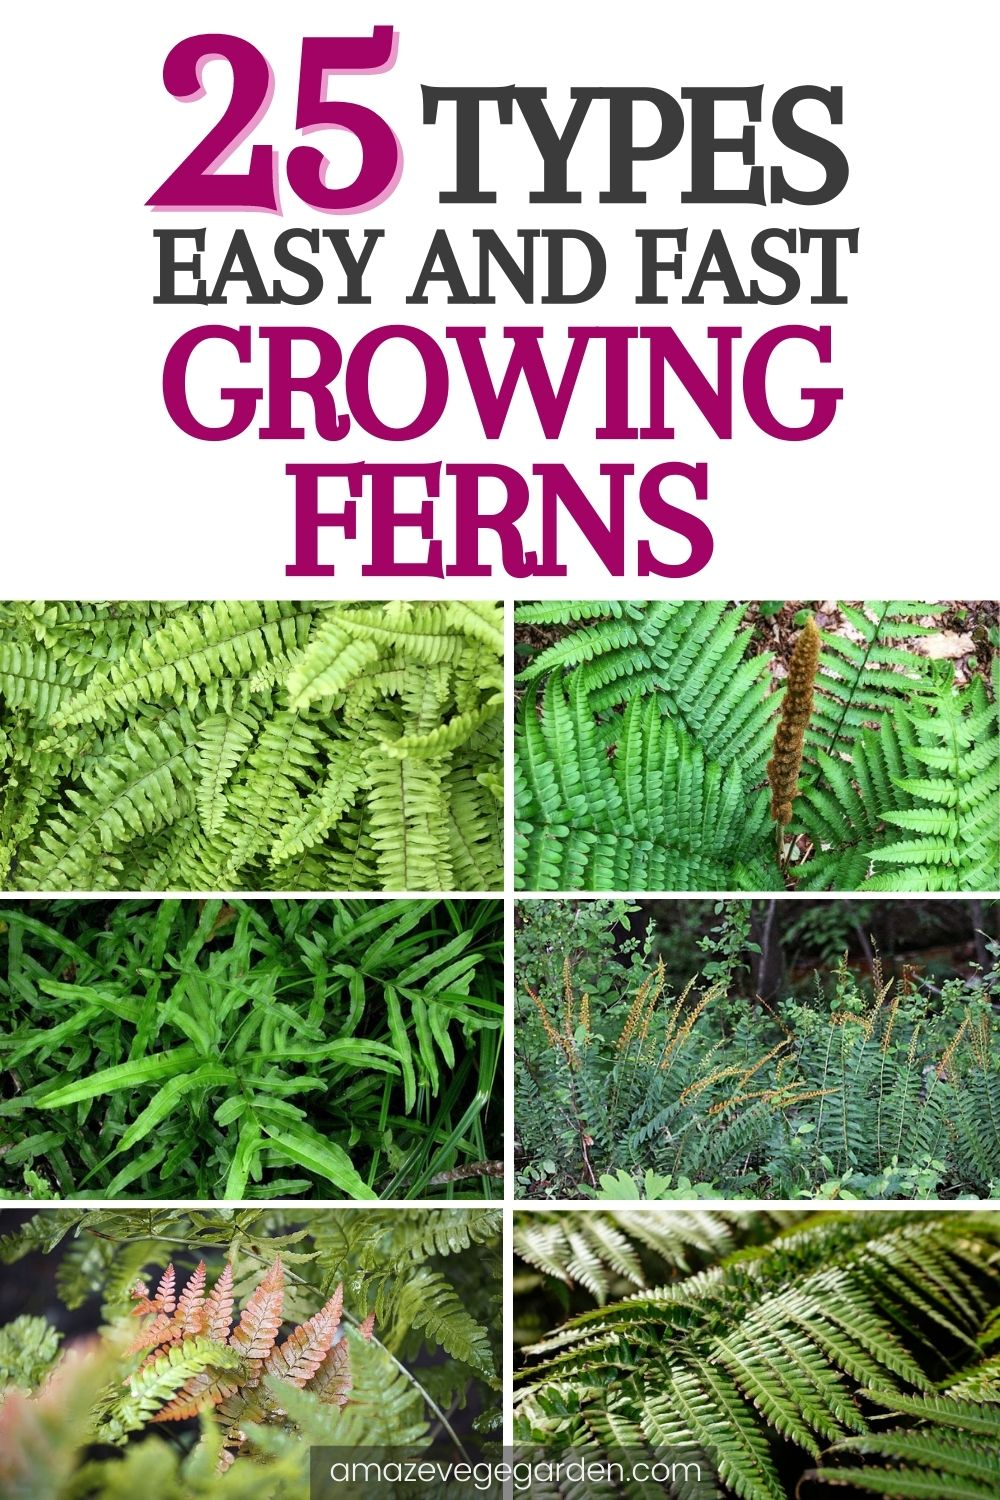 25 Types of Easy and Fast Growing Ferns